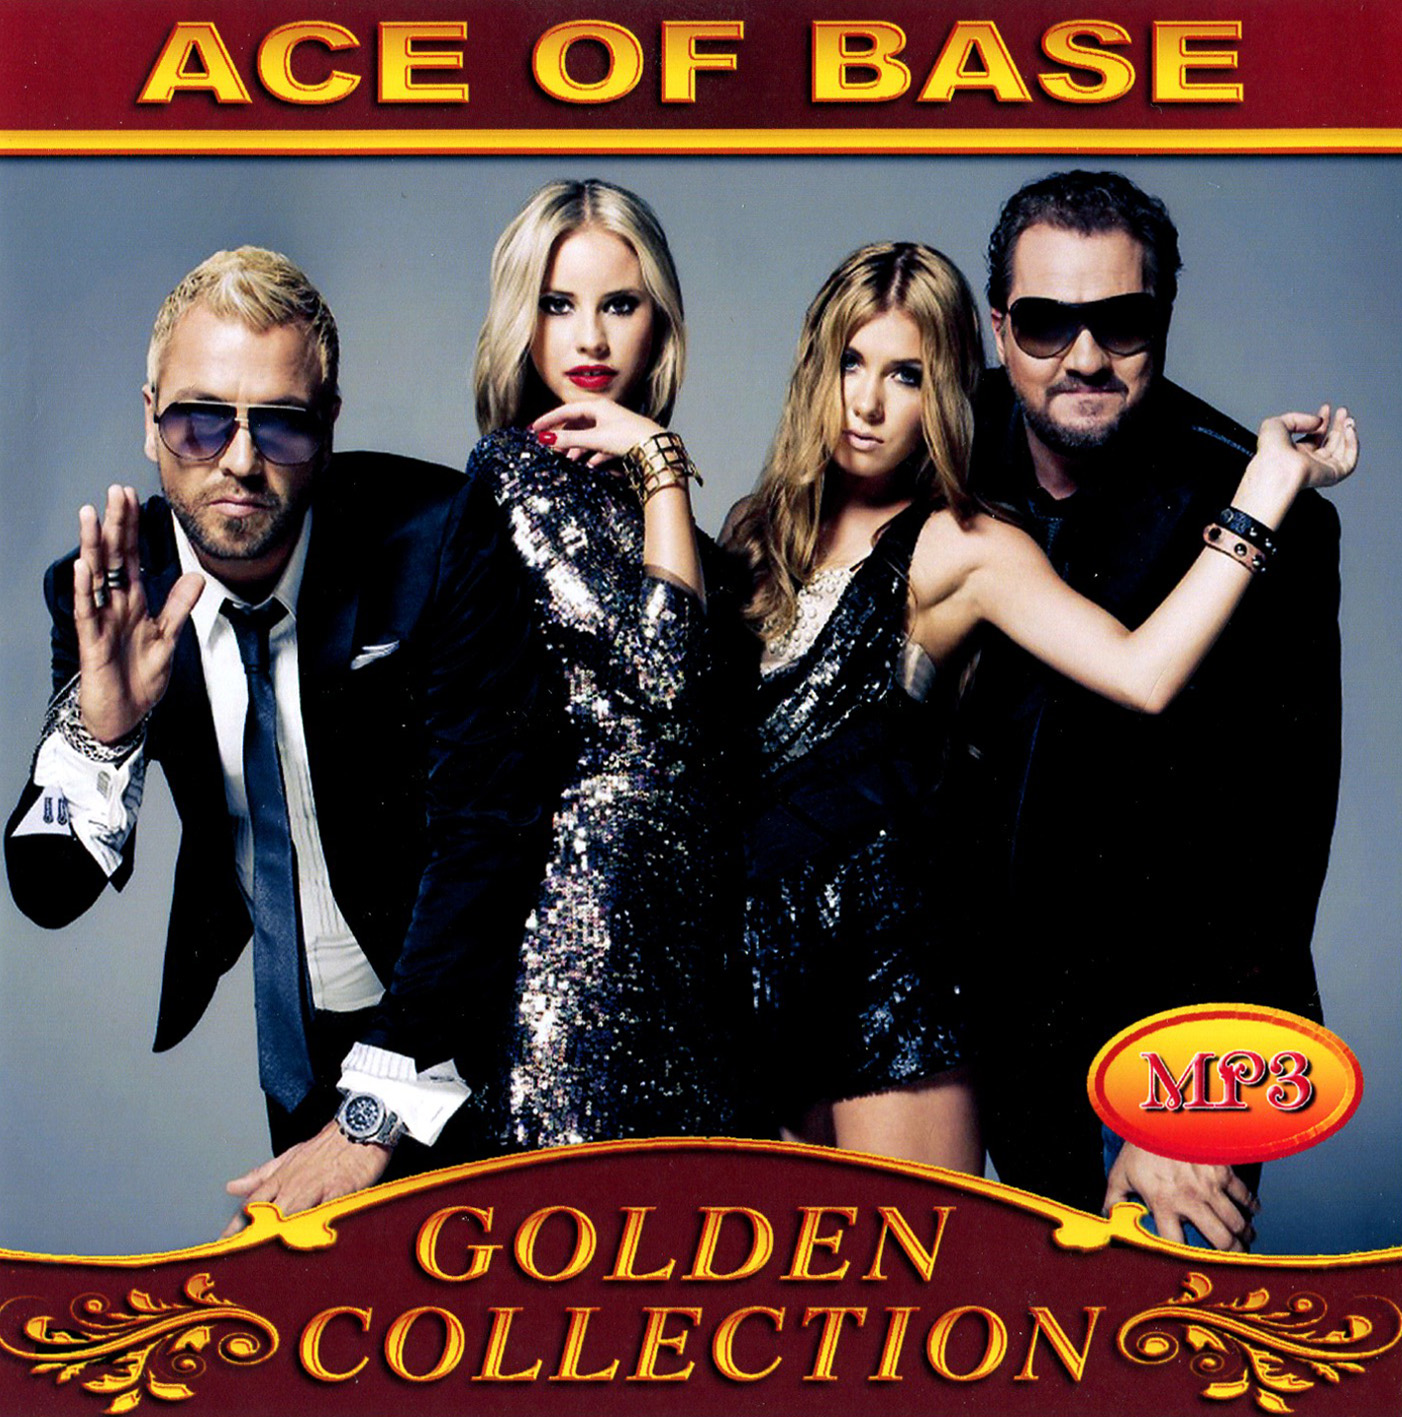 Ace of Base [mp3]